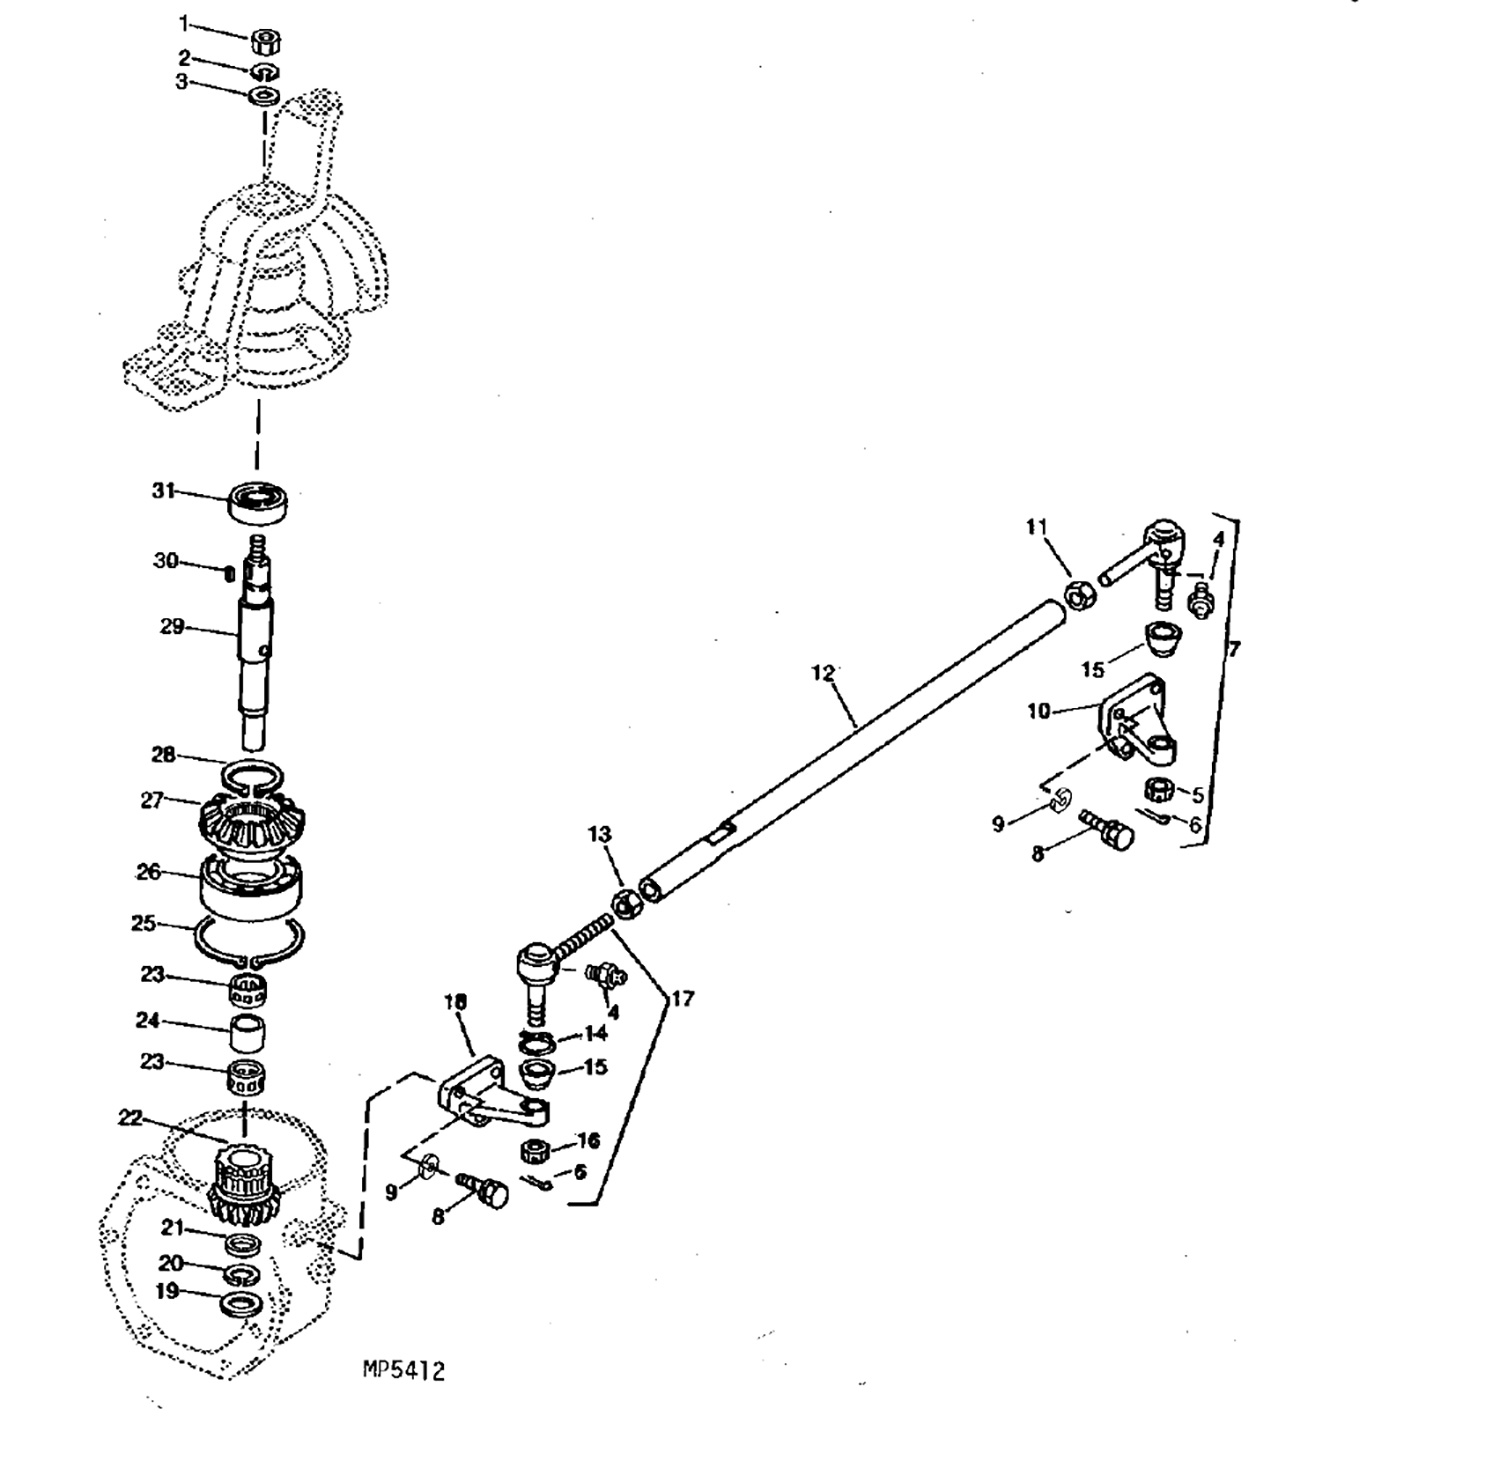 189940 Fuel Line 318 A moreover Saab Transmission Parts Diagrams Wiring Diagrams also John Deere 955 Parts Diagram together with John Deere X145 Garden Tractor Spare Parts additionally 578233 318 Deck Instal. on john deere 212 parts diagram